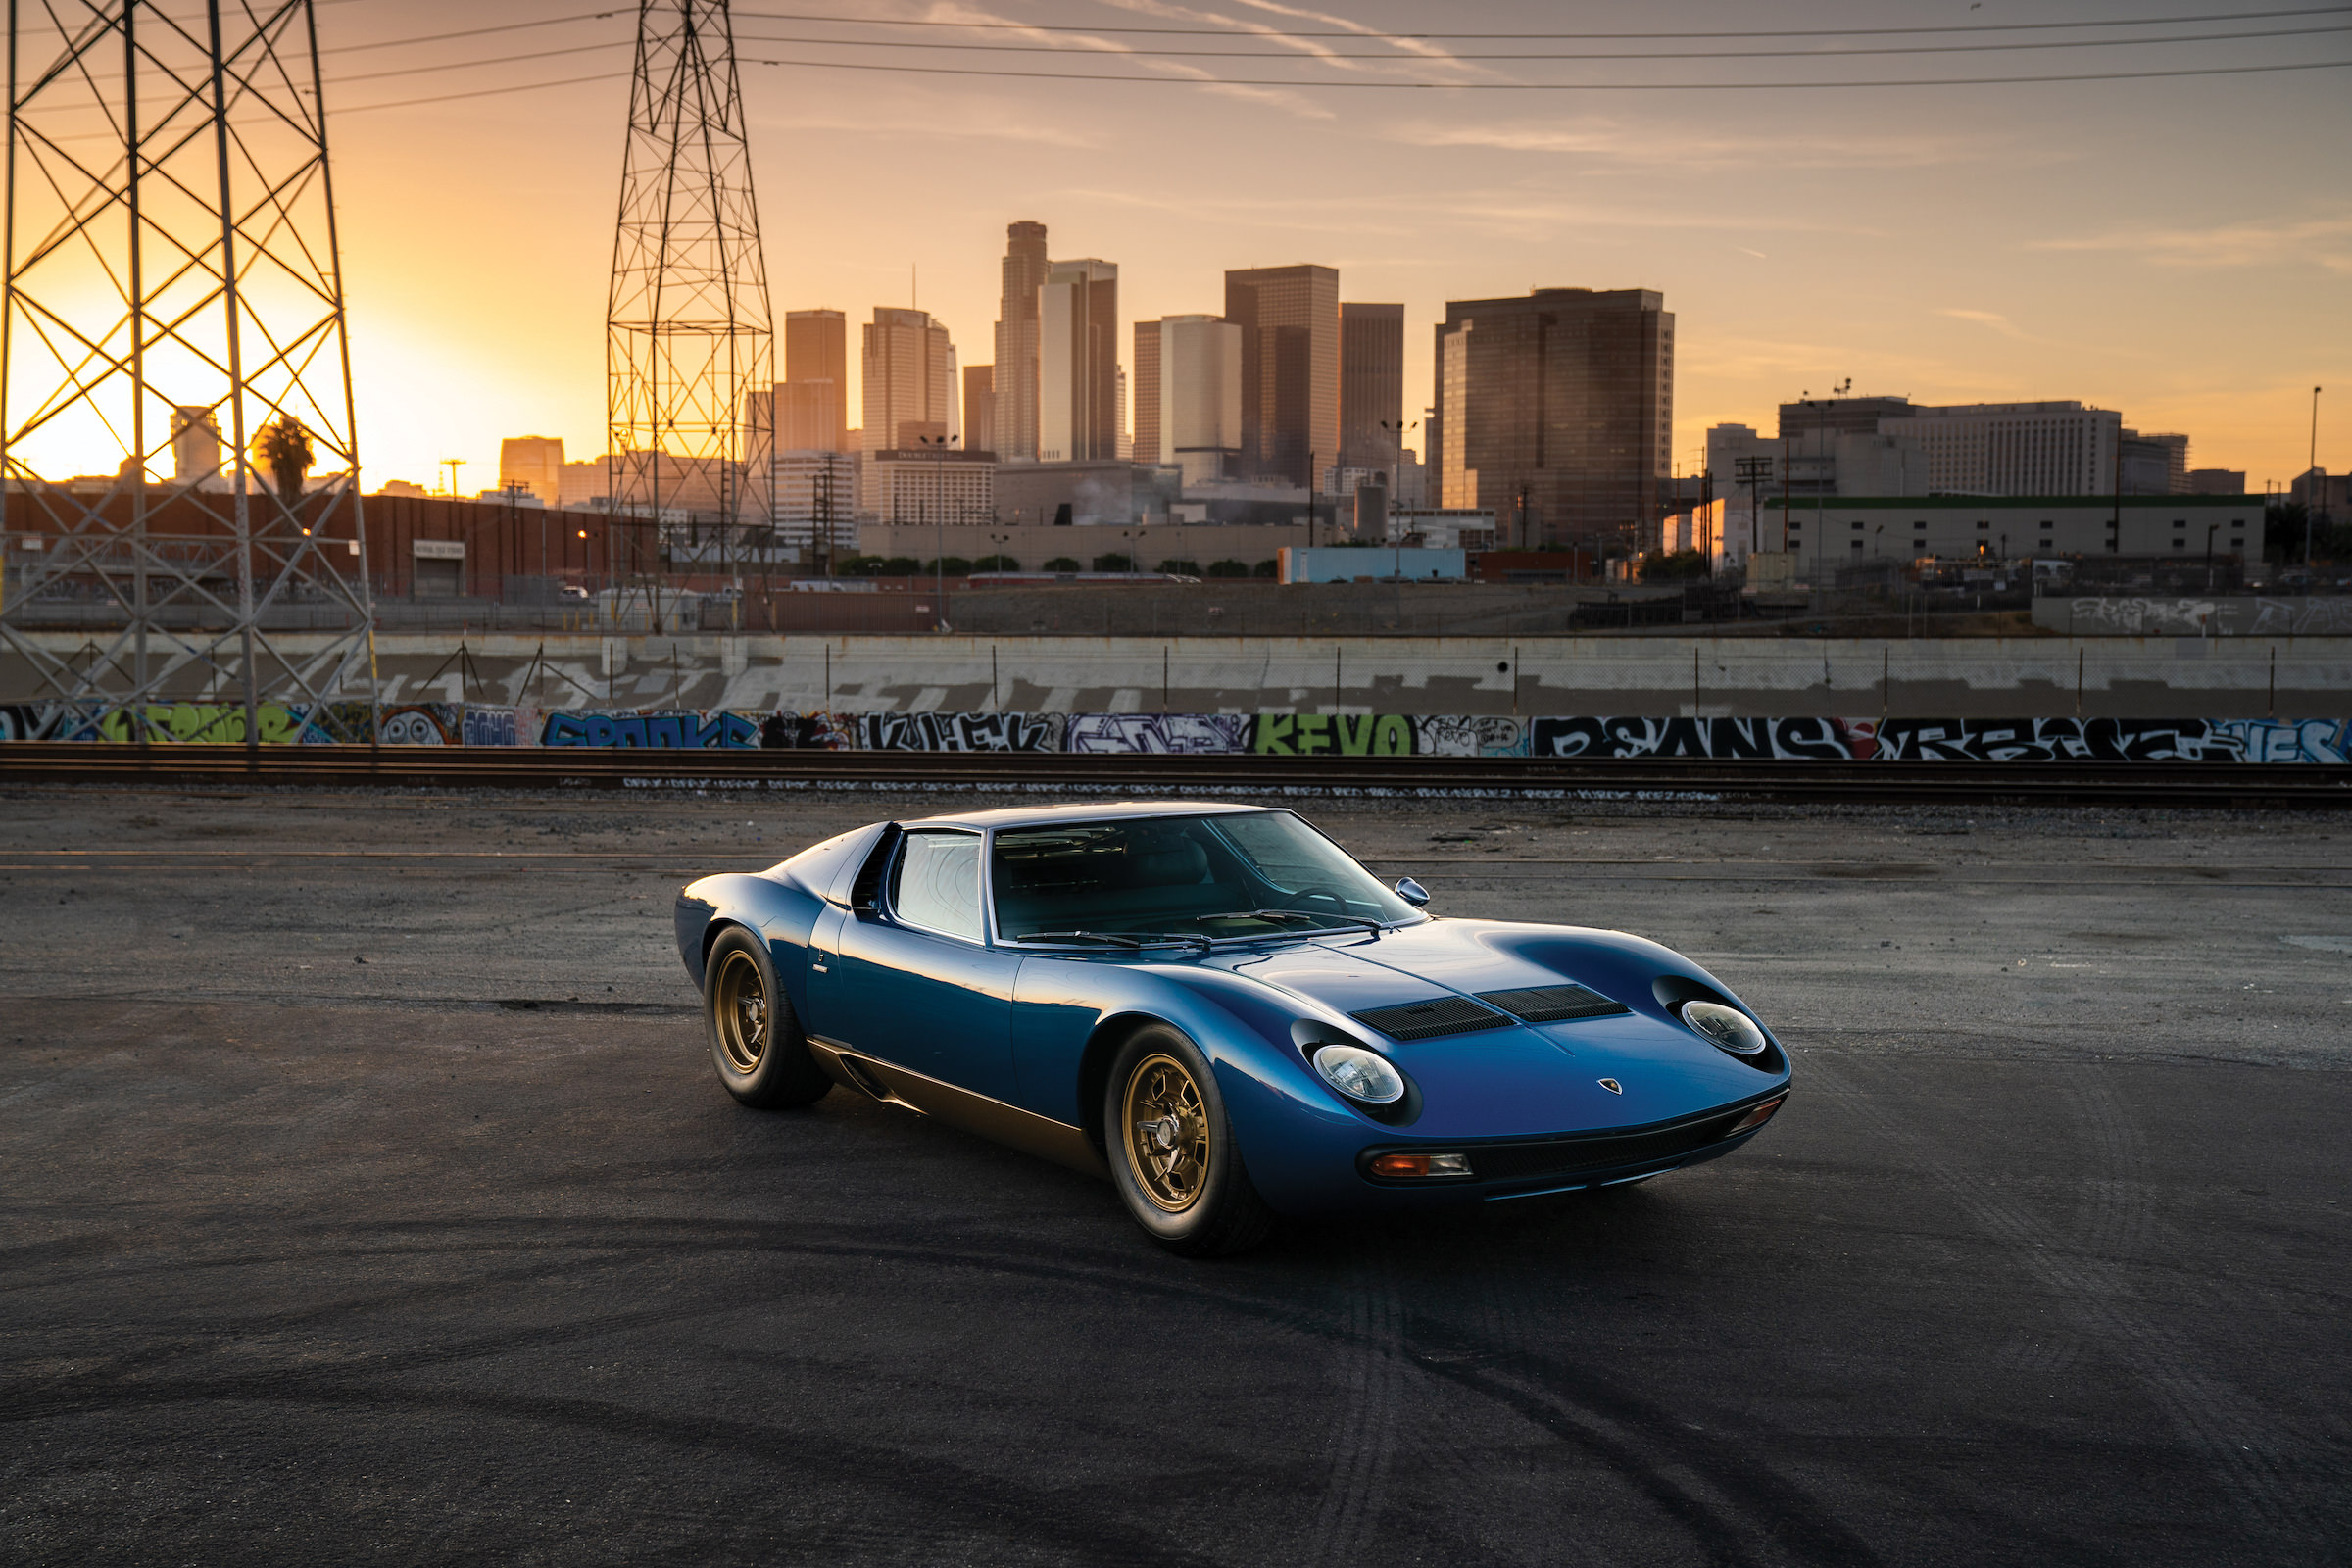 Lamborghini Miura P400 Sv The Godfather Of All Modern Supercars